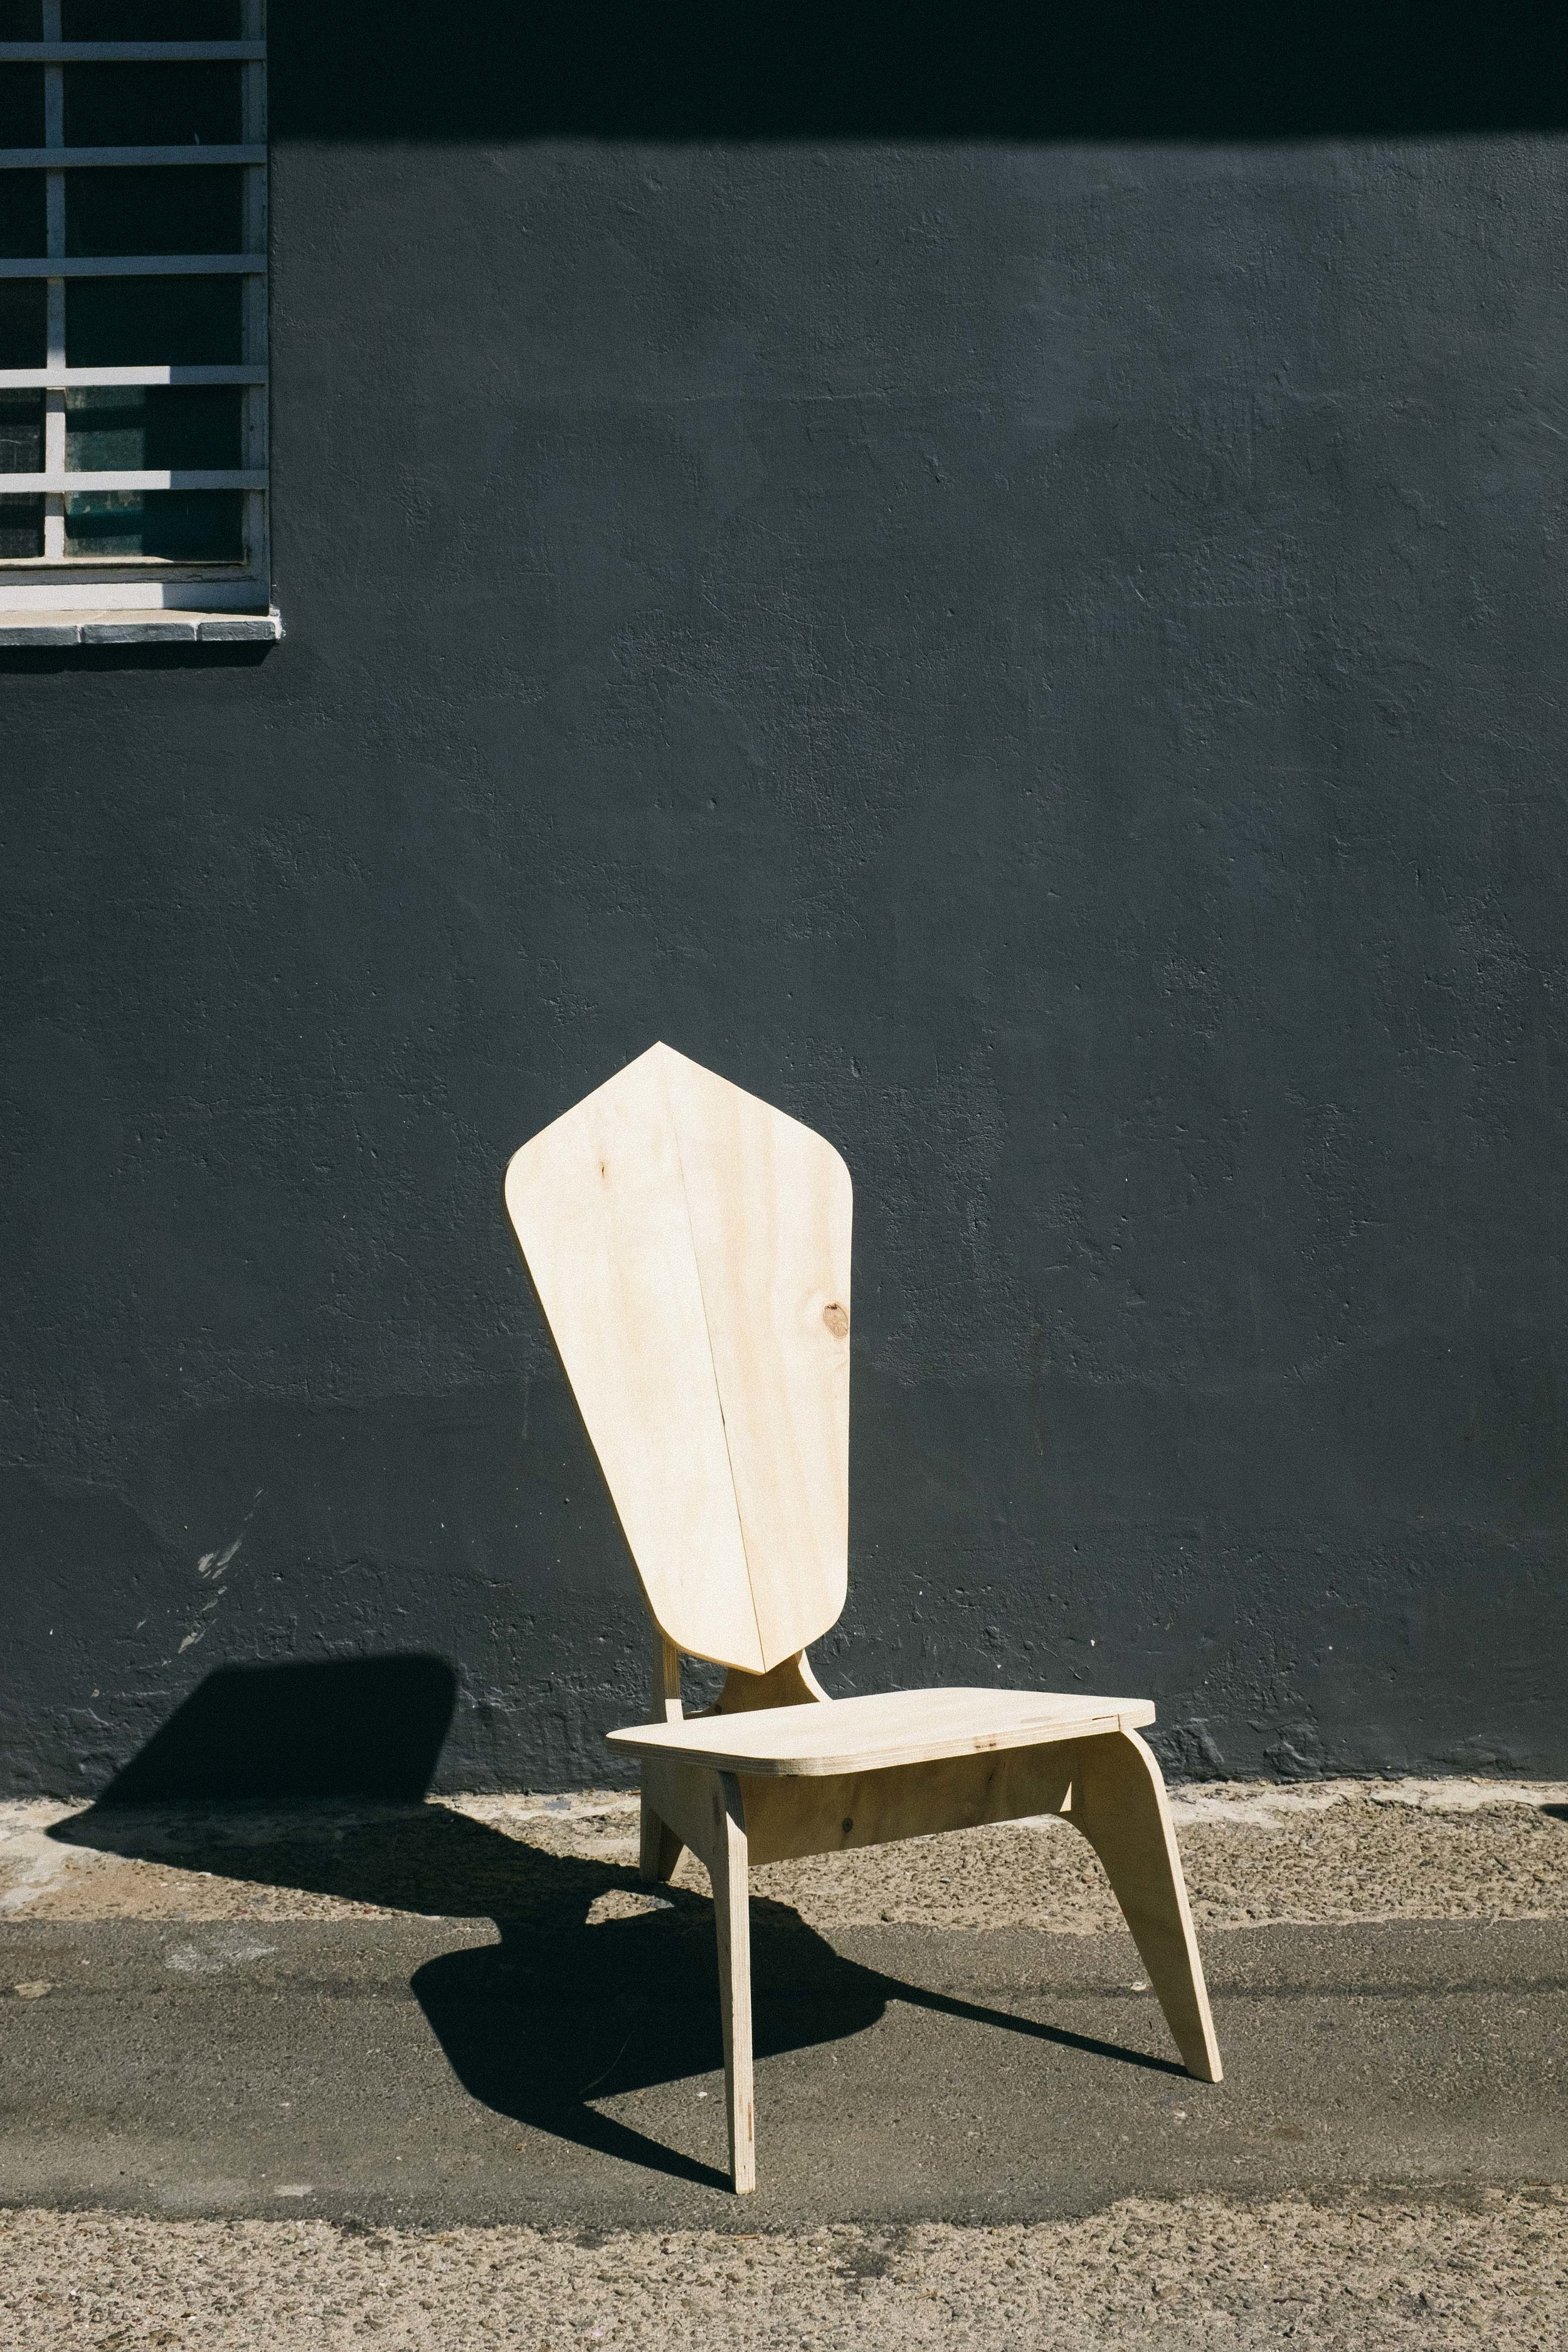 Lounge chair: designed from 1/3 sheet of plywood minimising the number of cuts